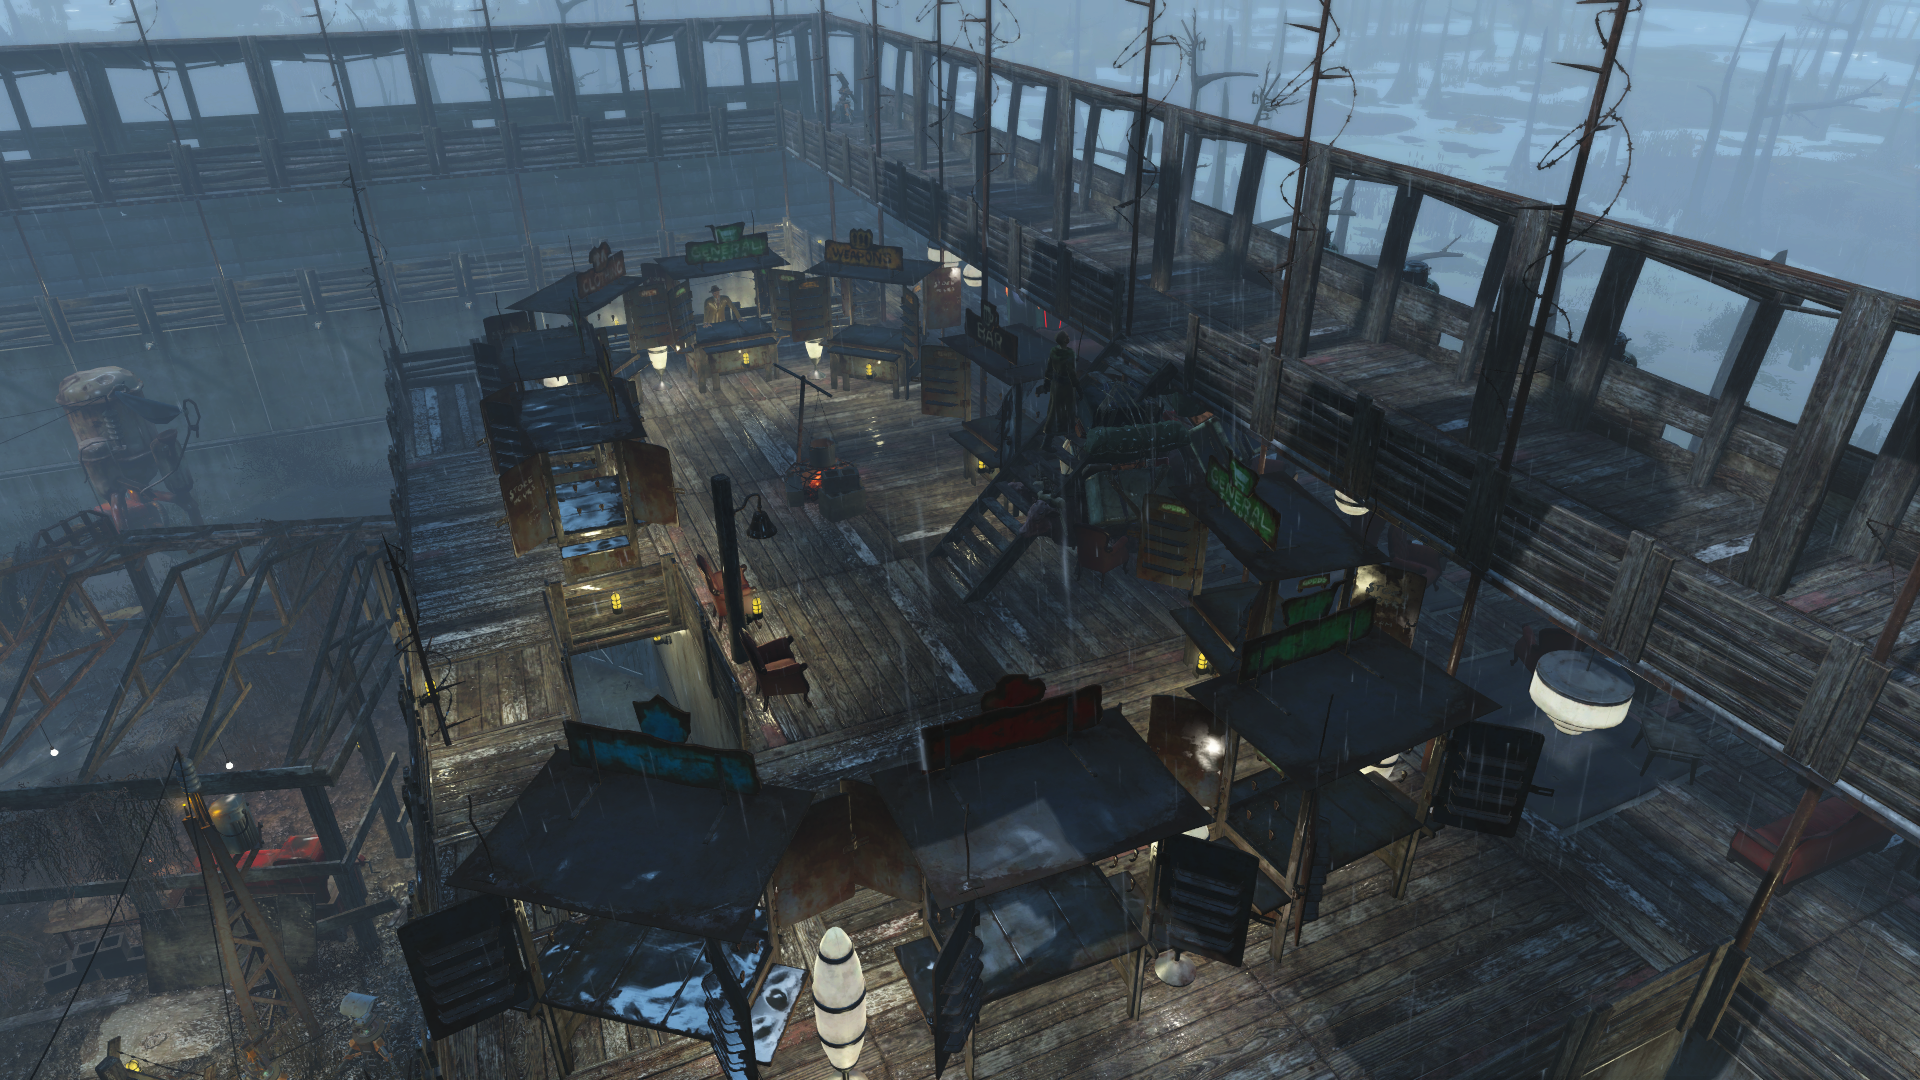 Fallout 4 'House' Is More Like A Giant Citadel